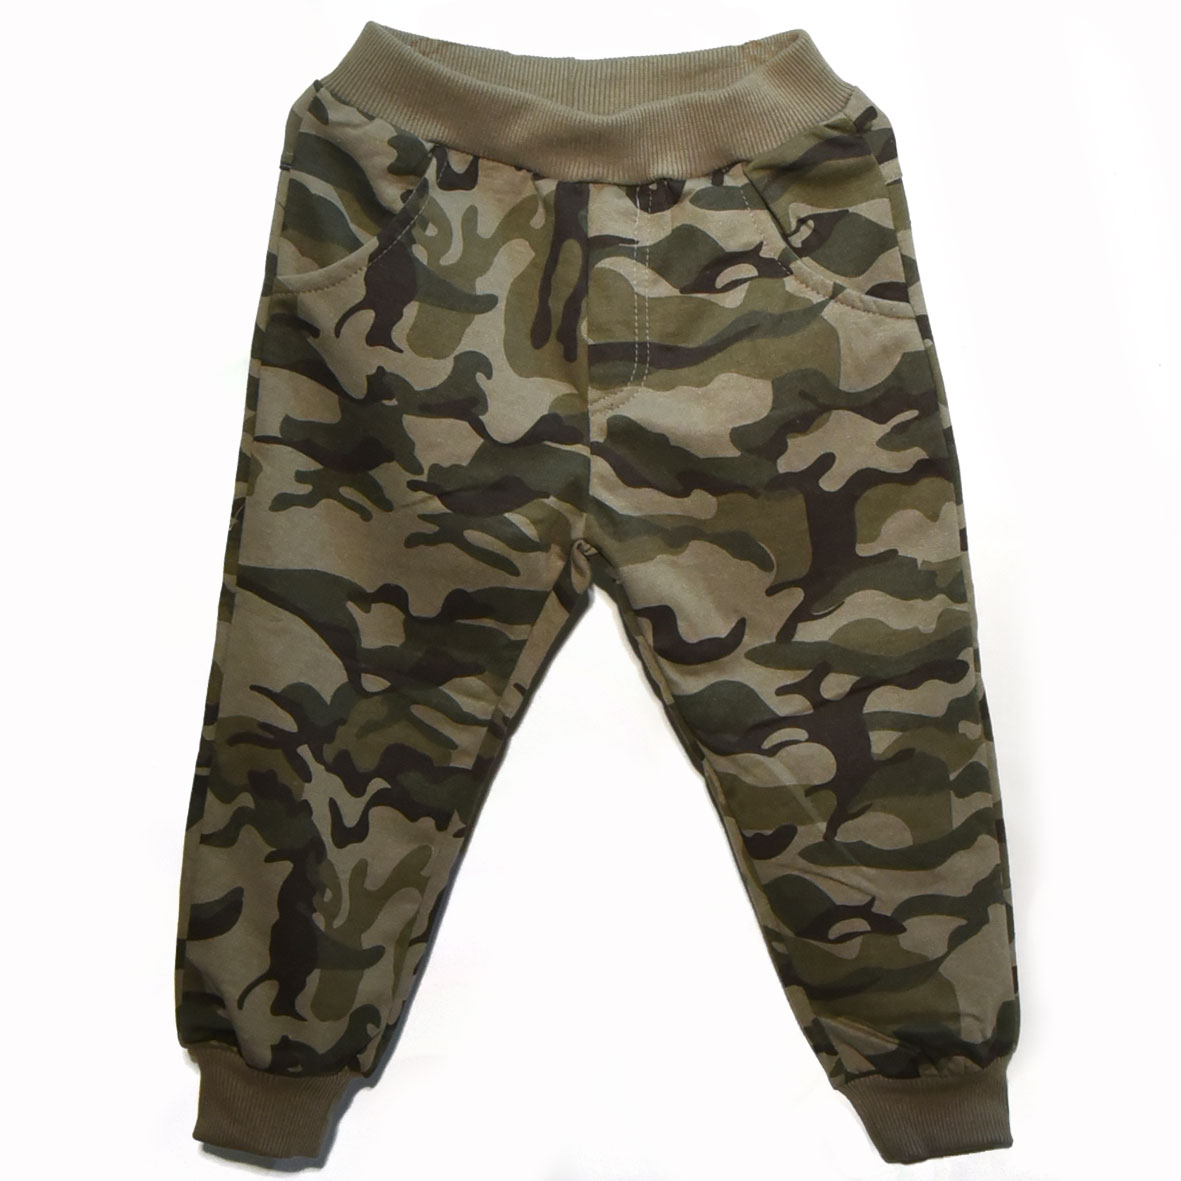 high quality great deals pre order Kids Army Pants Woodland 12-18 months